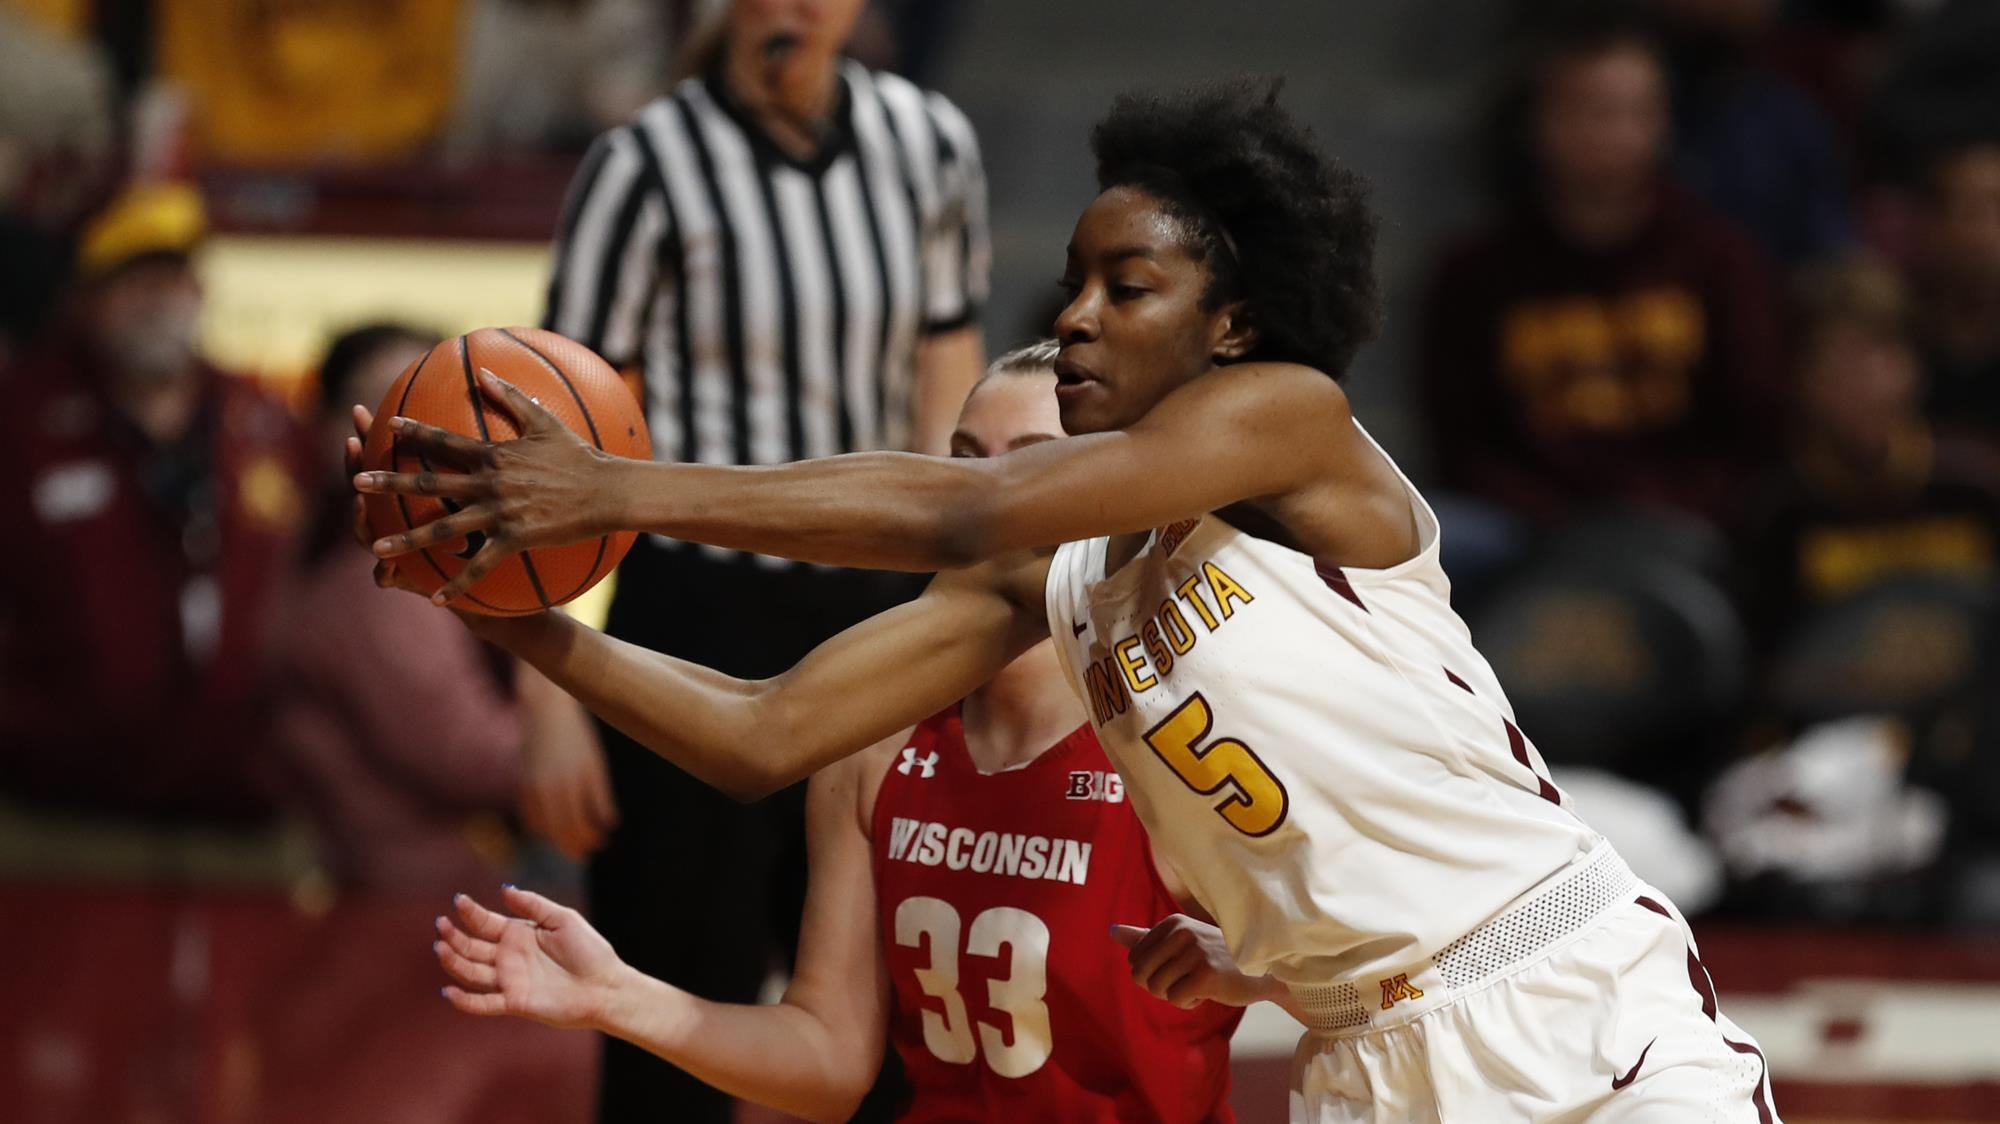 Minnesota heads into Big Ten play with the best start in 15 years; Whalen confident about team's offensive efficiency